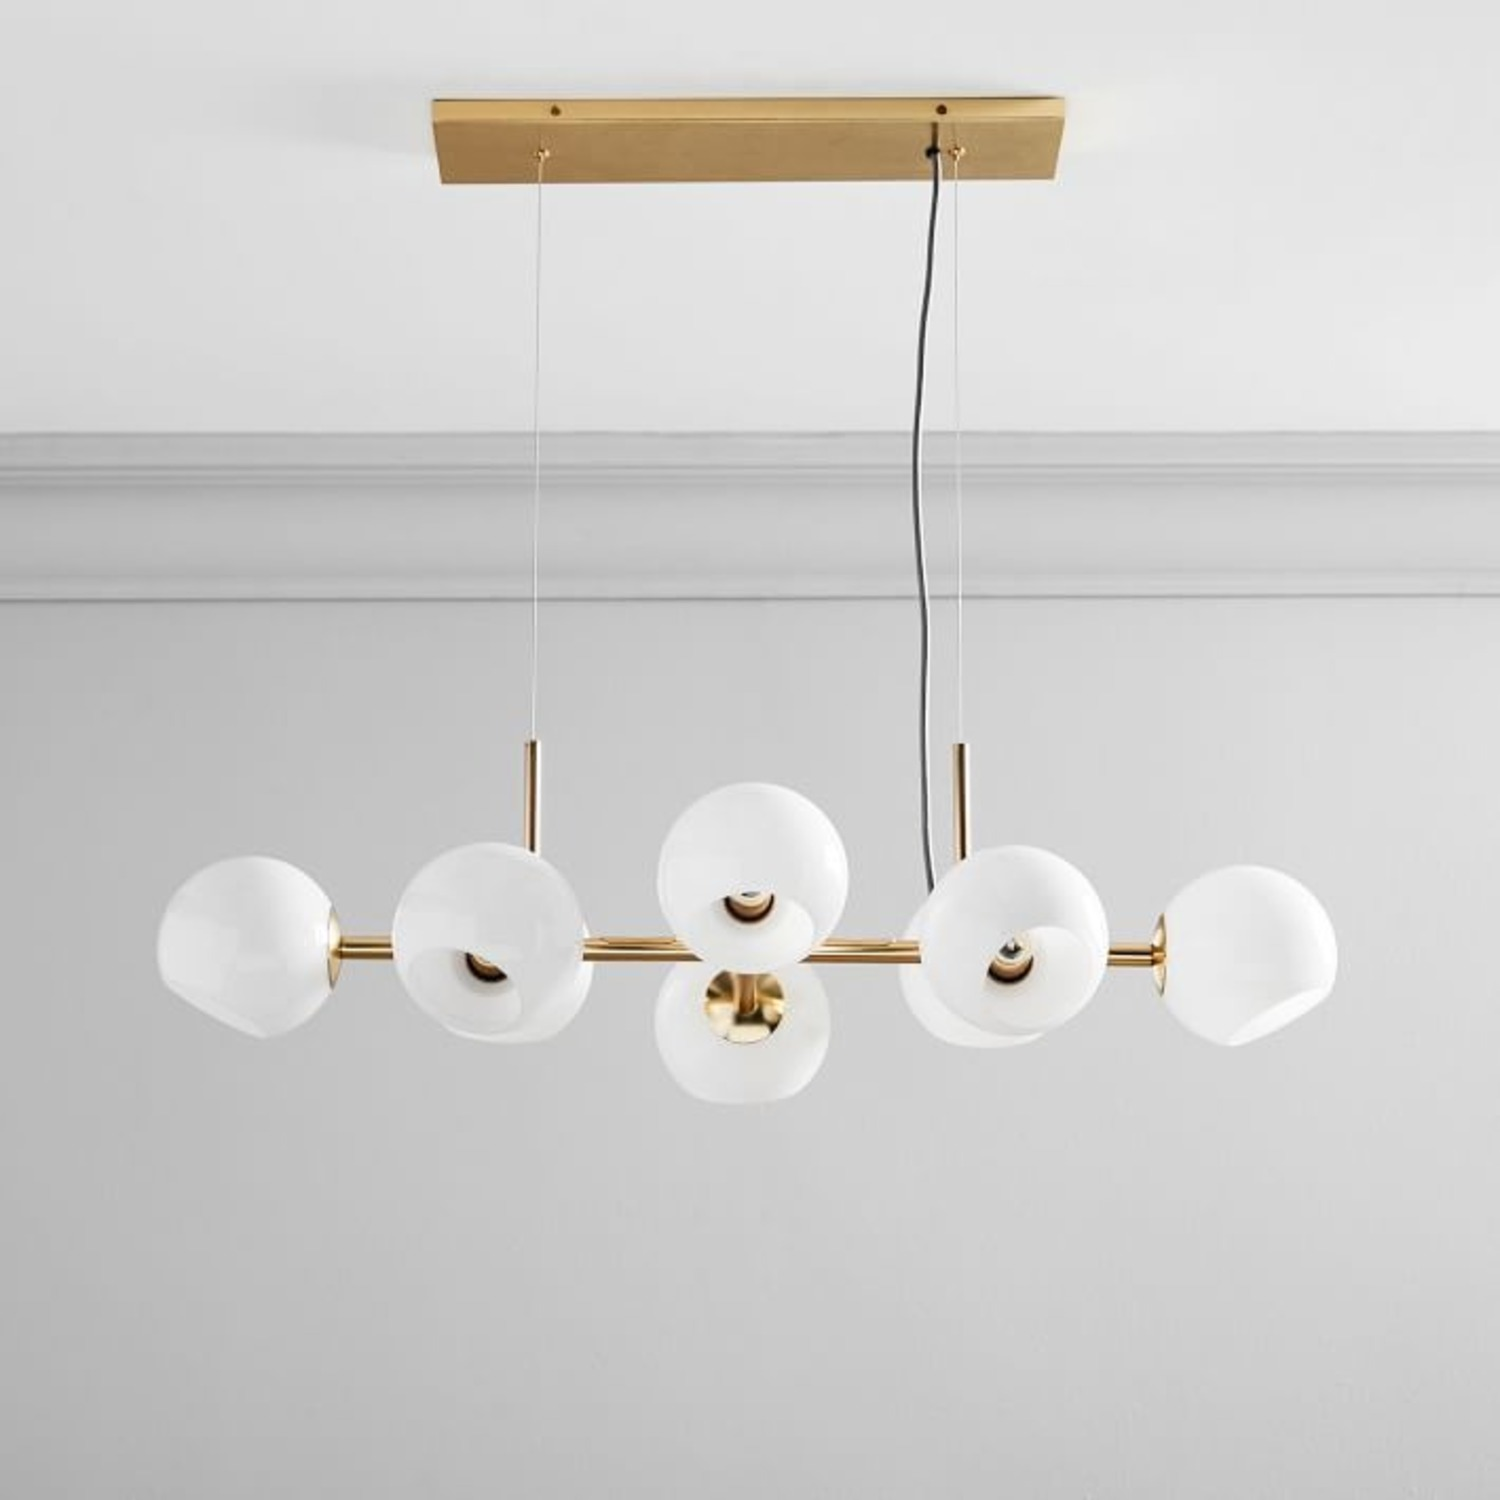 West Elm Staggered Glass Chandelier - image-1